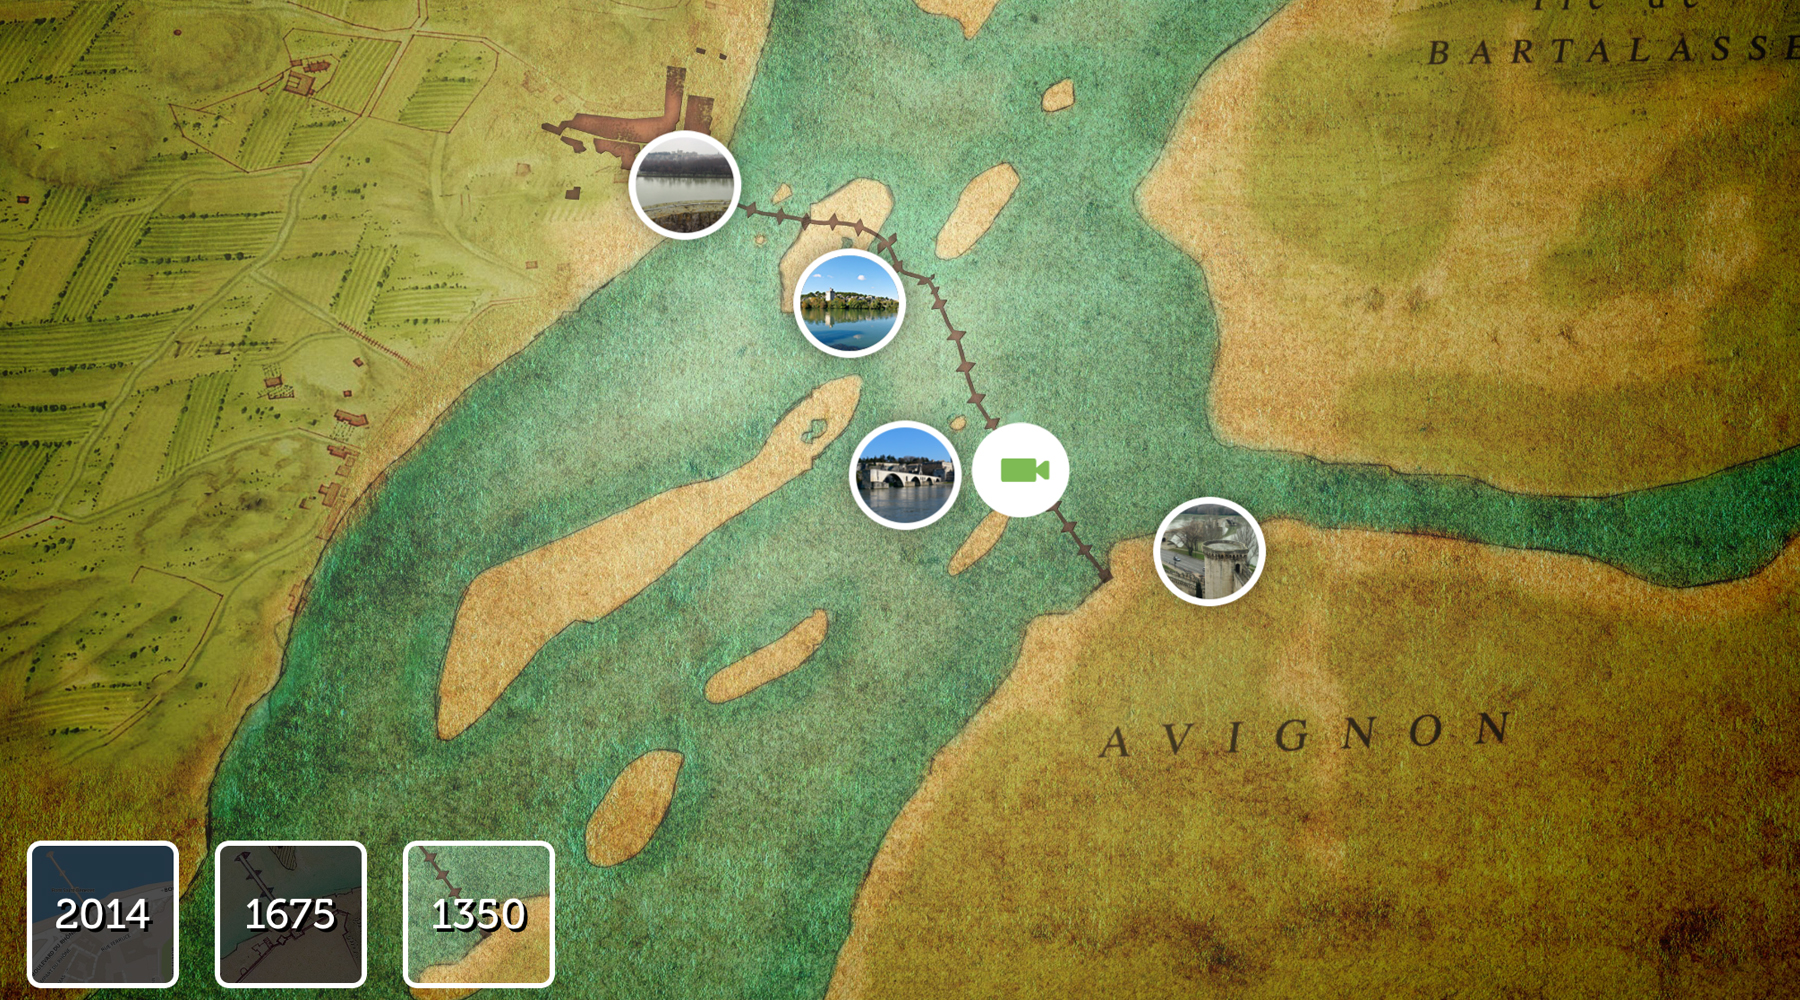 L'interface de l'application Avignon 3D : carte de la ville en (...)